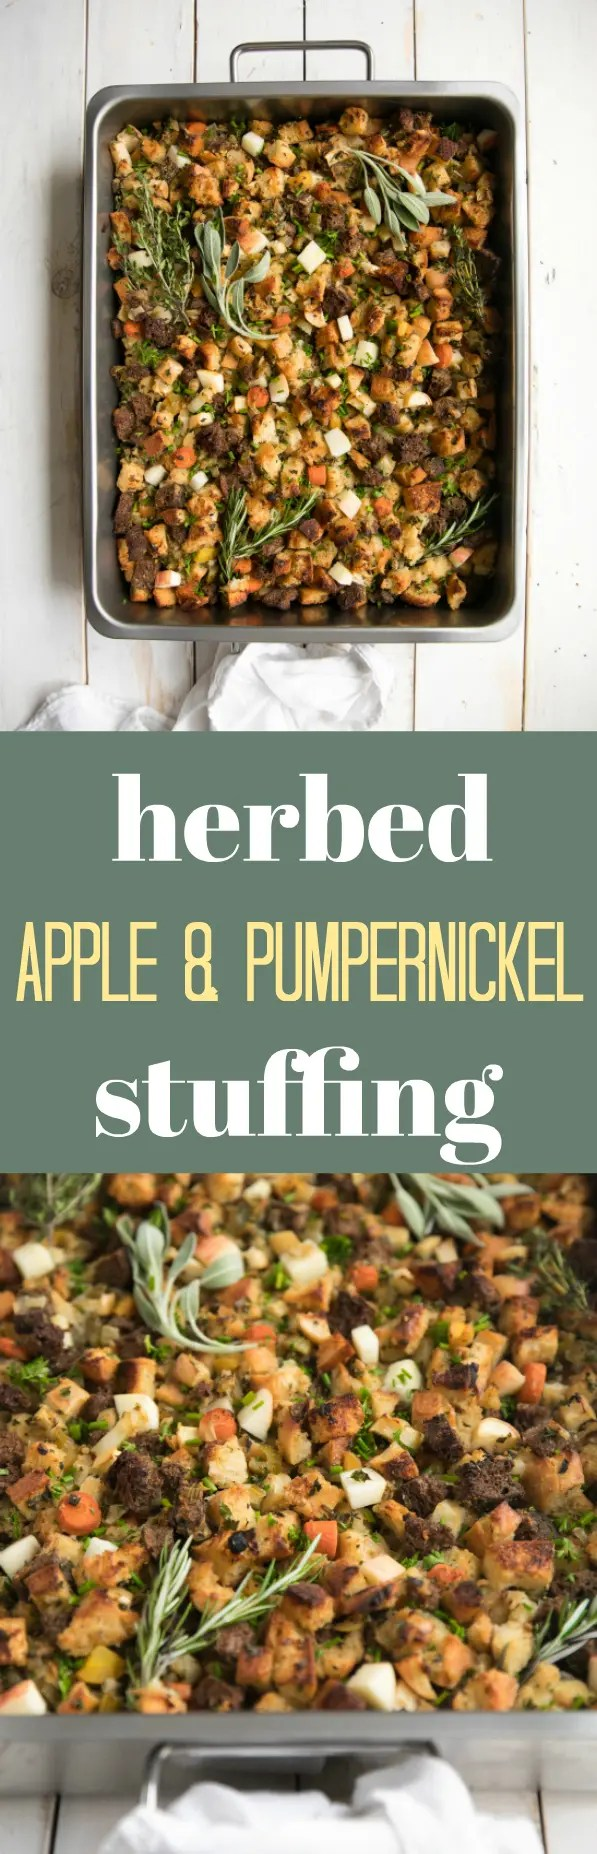 Pumpernickel and Sourdough bread come together in this hearty, healthy and completely vegetarian version of the must-have Thanksgiving side dish- stuffing! #thanksgiving #healthy #holiday #veg #vegetarian #healthyrecipes @theforkedspoon